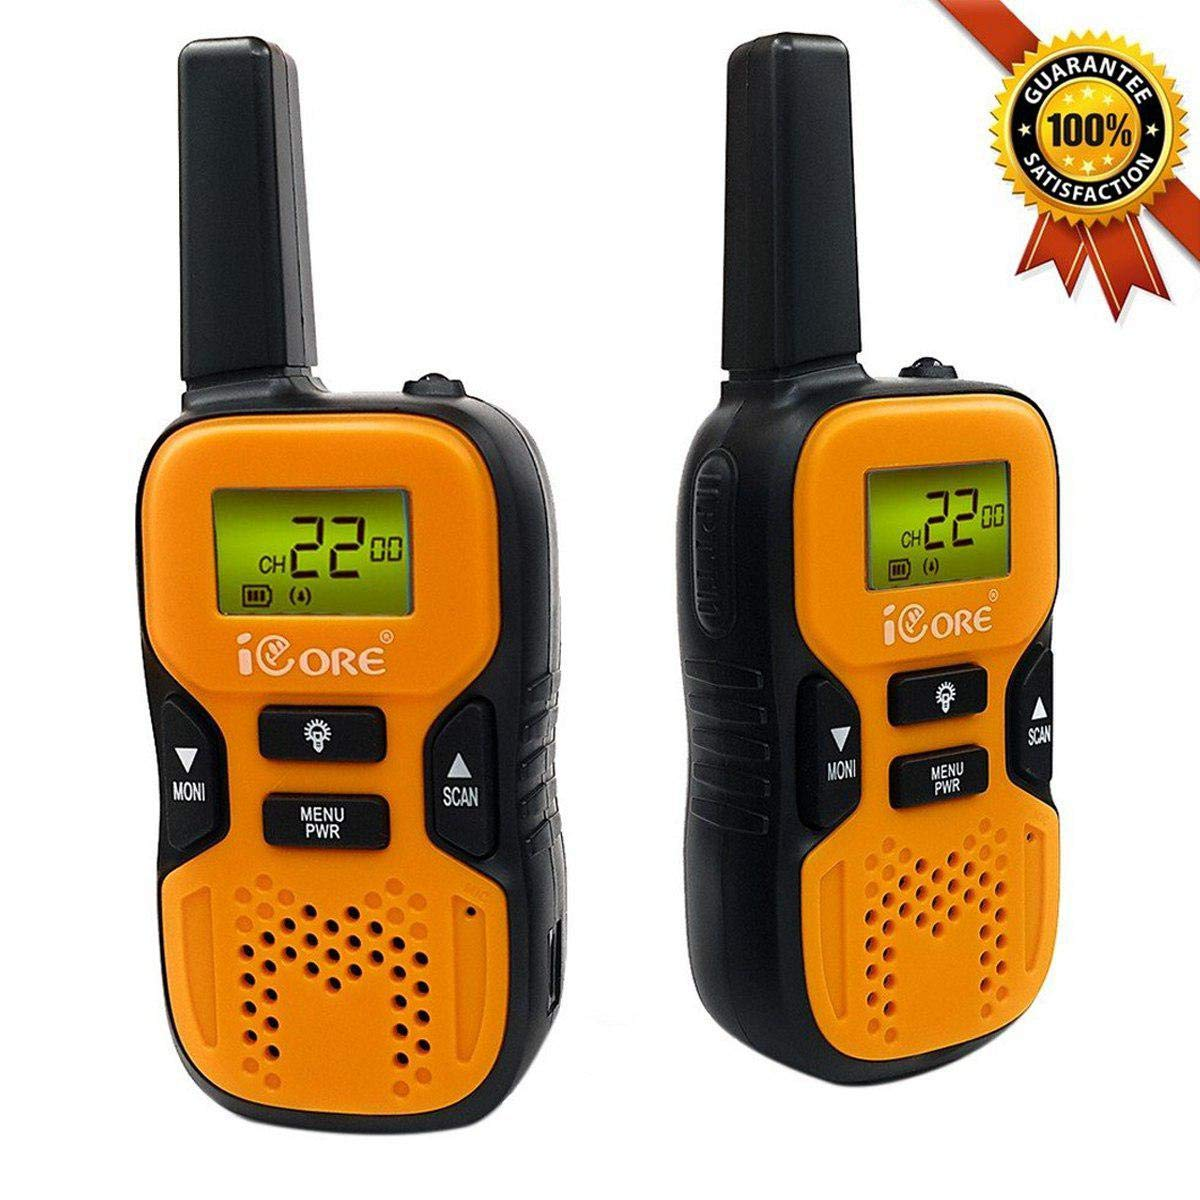 iCore Walkie Talkies for Kids, Long Range Walkie Talkie with 2 Way Radios (Pair), 22 Channel Walky Talk Rechargeable, Built-in Flash Light for Girls Boys Toys Age 6 7 Year Old Up (Orange) by iCore (Image #1)